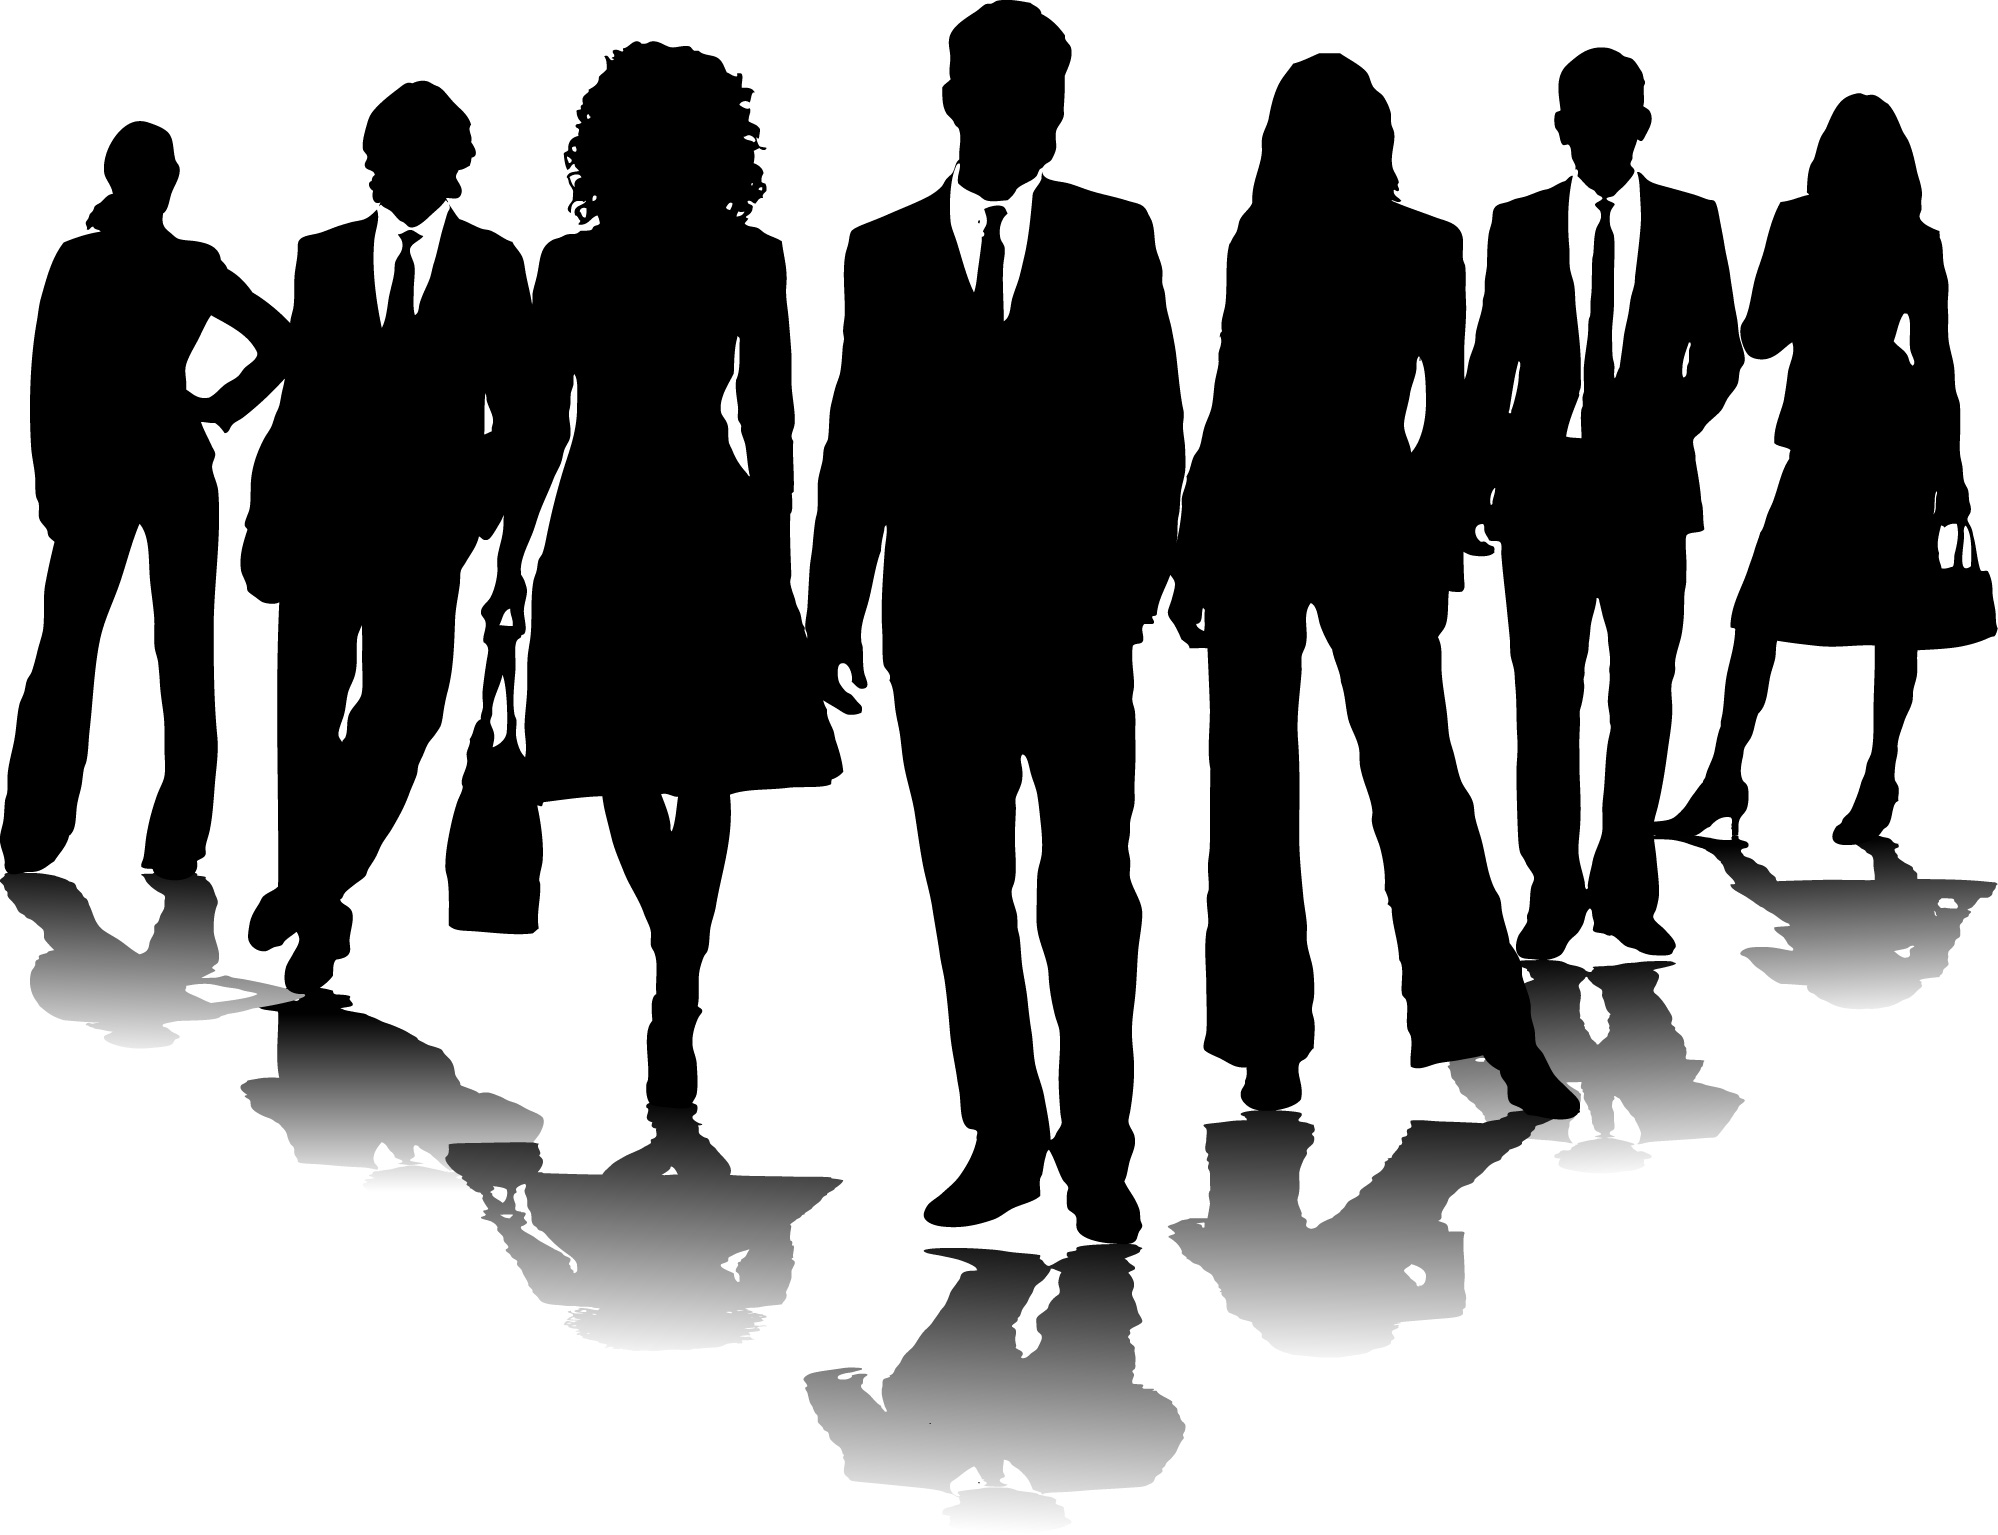 Business people clipart free clipart images 2